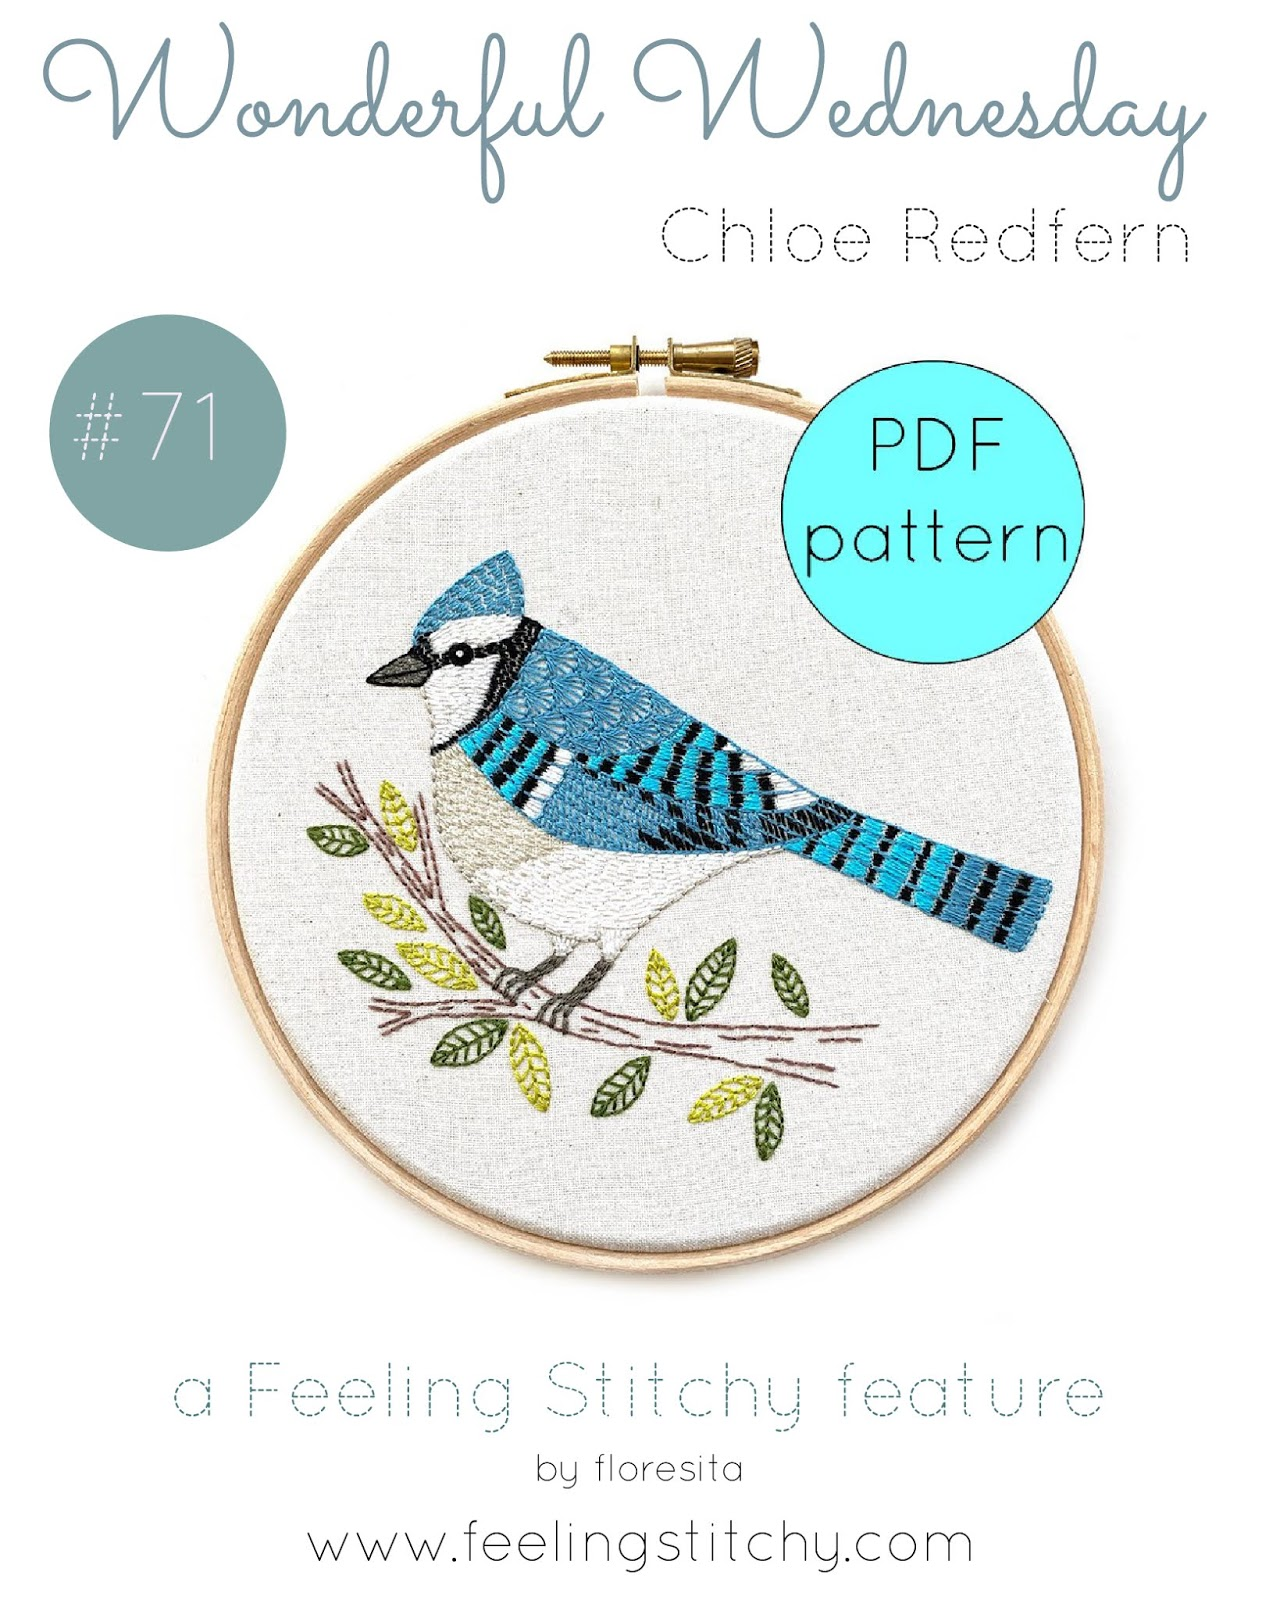 Wonderful Wednesday 71 - Blue Jay pattern by Chloe Redfern as featured by floresita on Feeling Stitchy